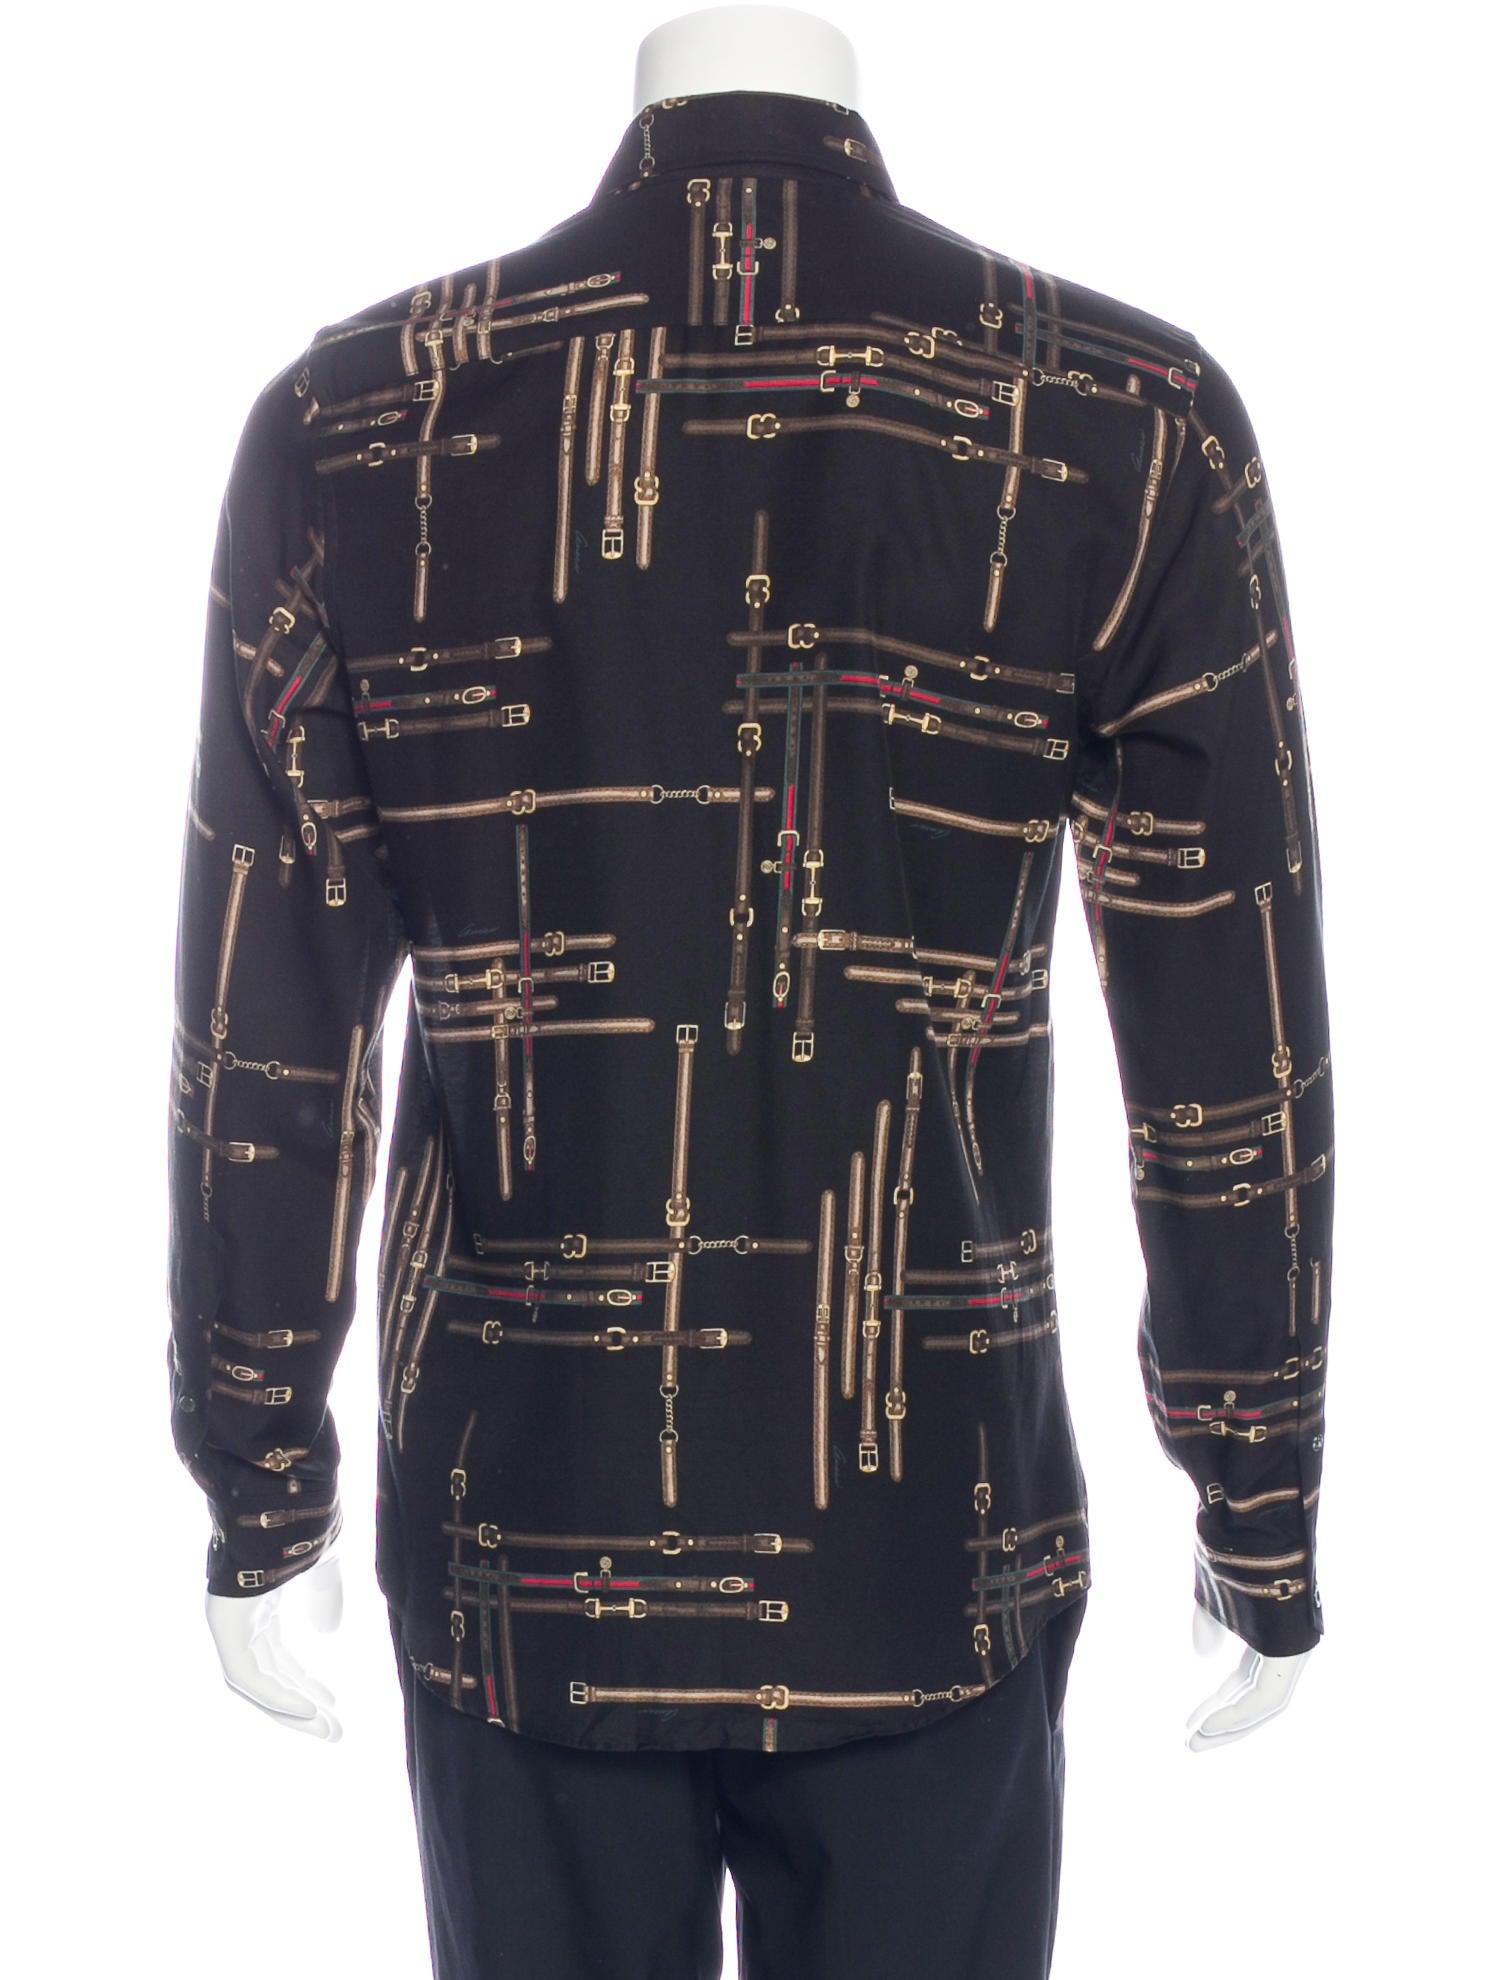 Gucci Stirrup Print Shirt - Clothing - GUC152688 | The RealReal